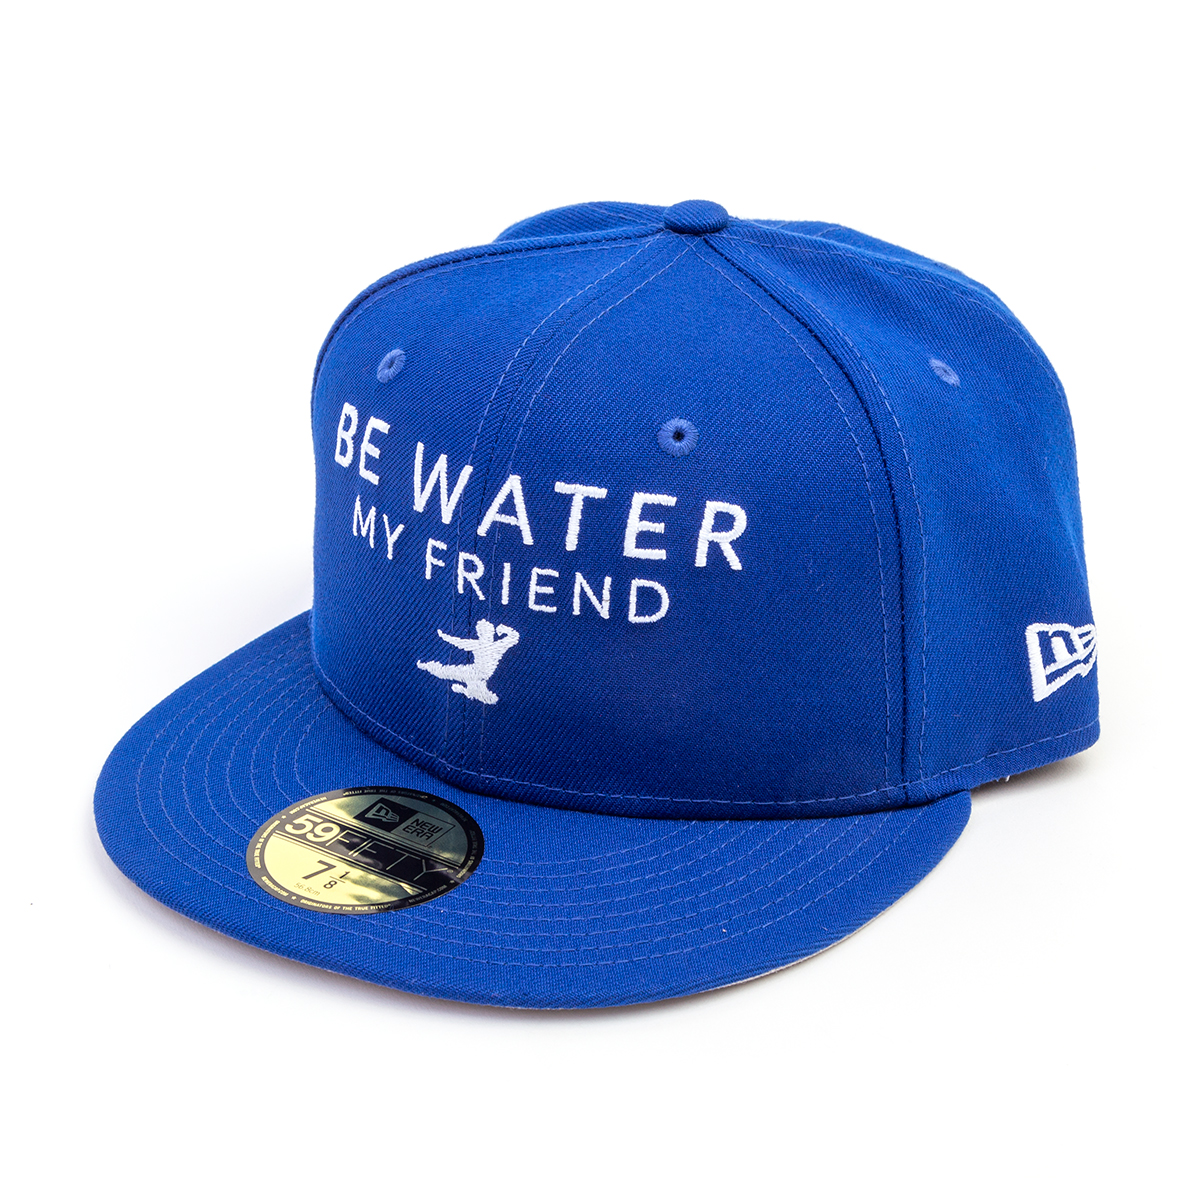 Be Water, My Friend New Era 59Fifty Hat